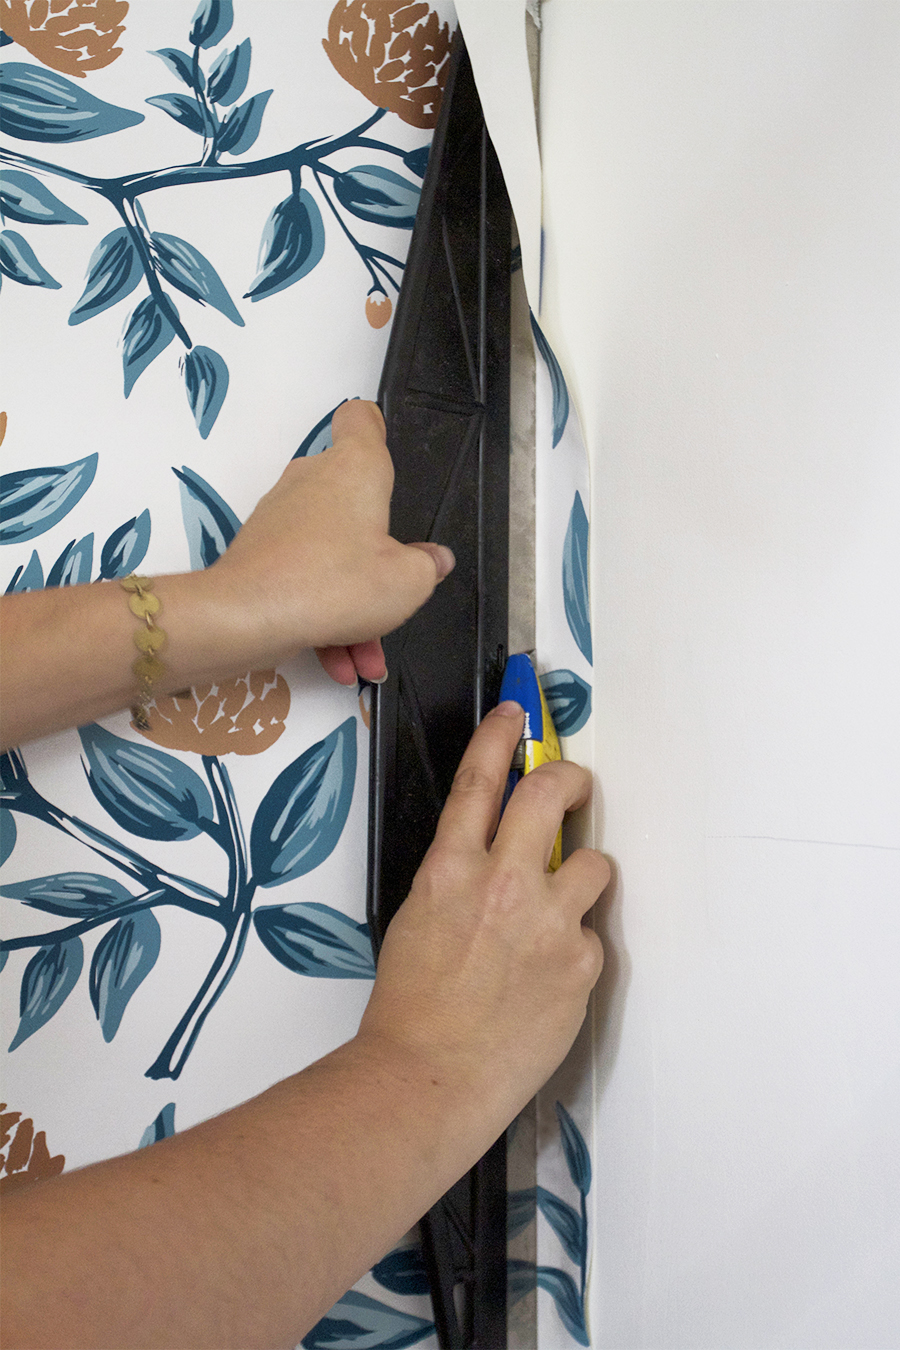 Trim Excess Wallpaper with a Straight Edge